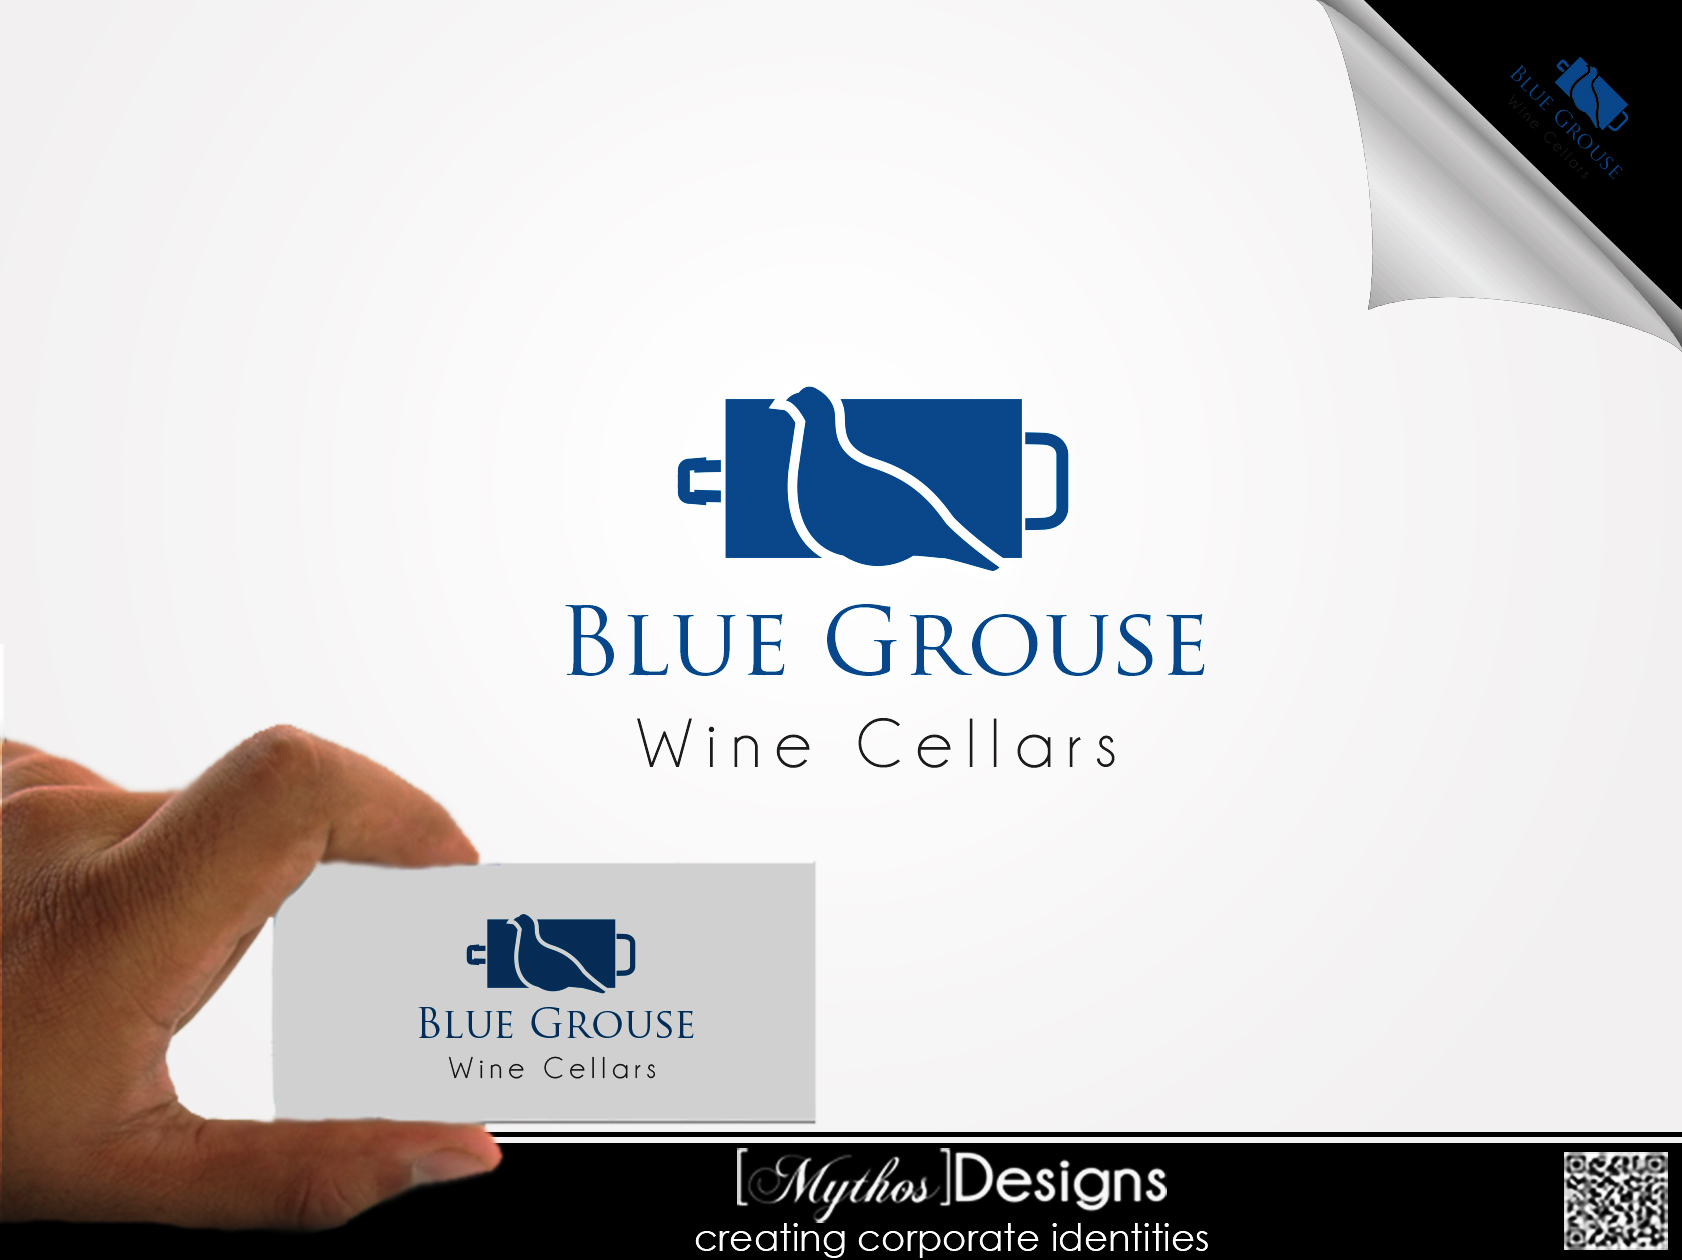 Logo Design by Mythos Designs - Entry No. 18 in the Logo Design Contest Creative Logo Design for Blue Grouse Wine Cellars.